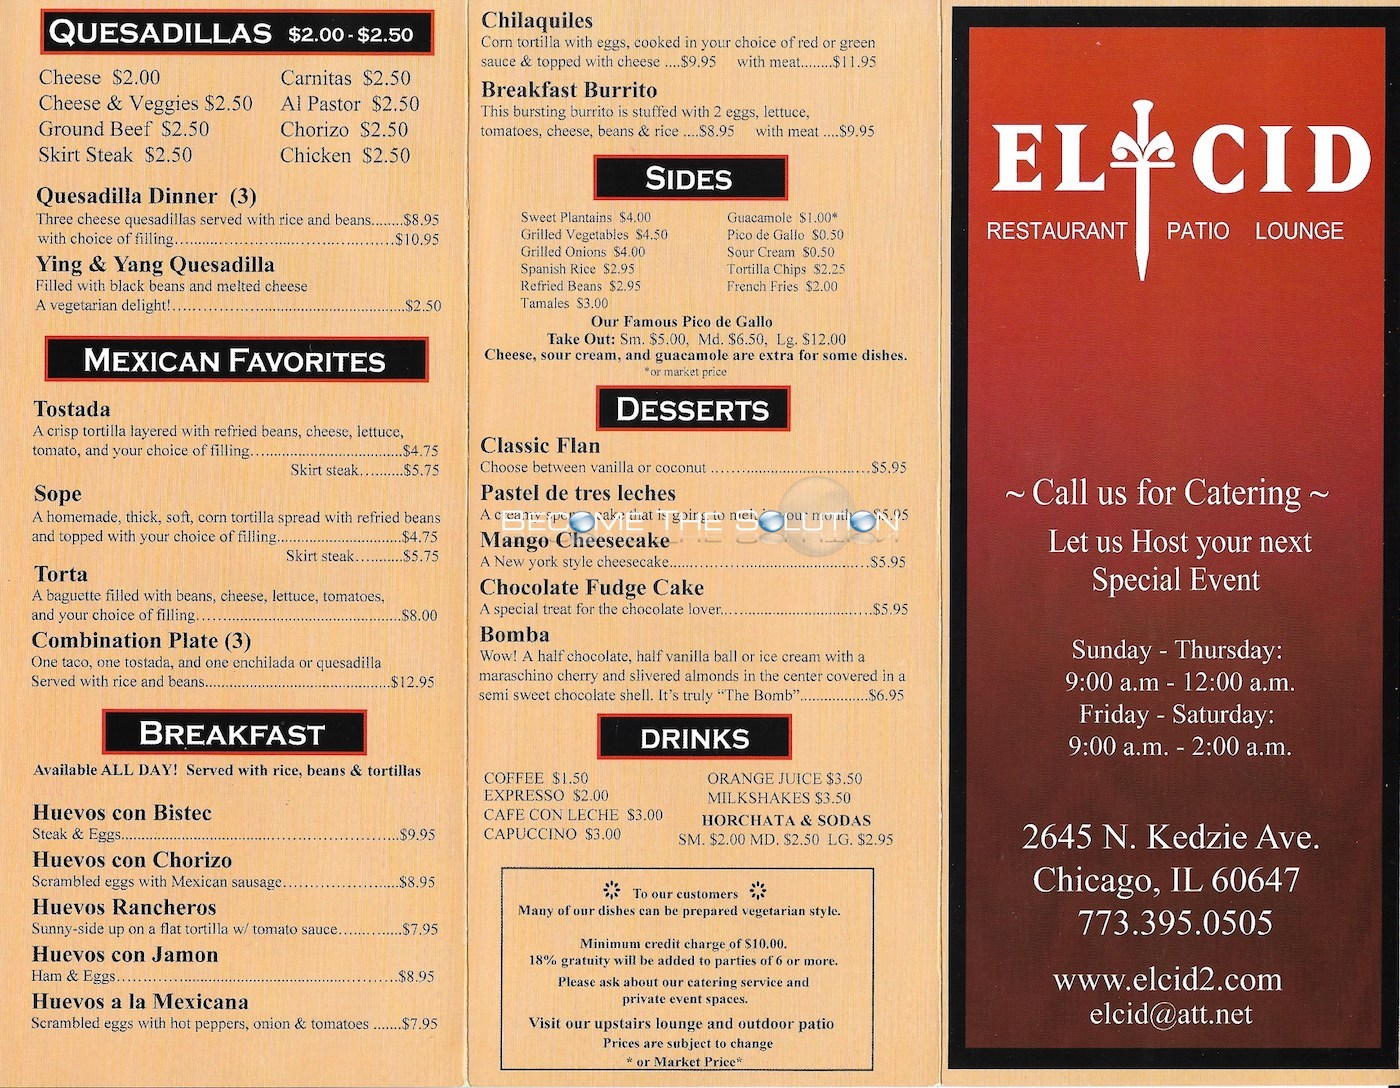 El cid chicago menu 1